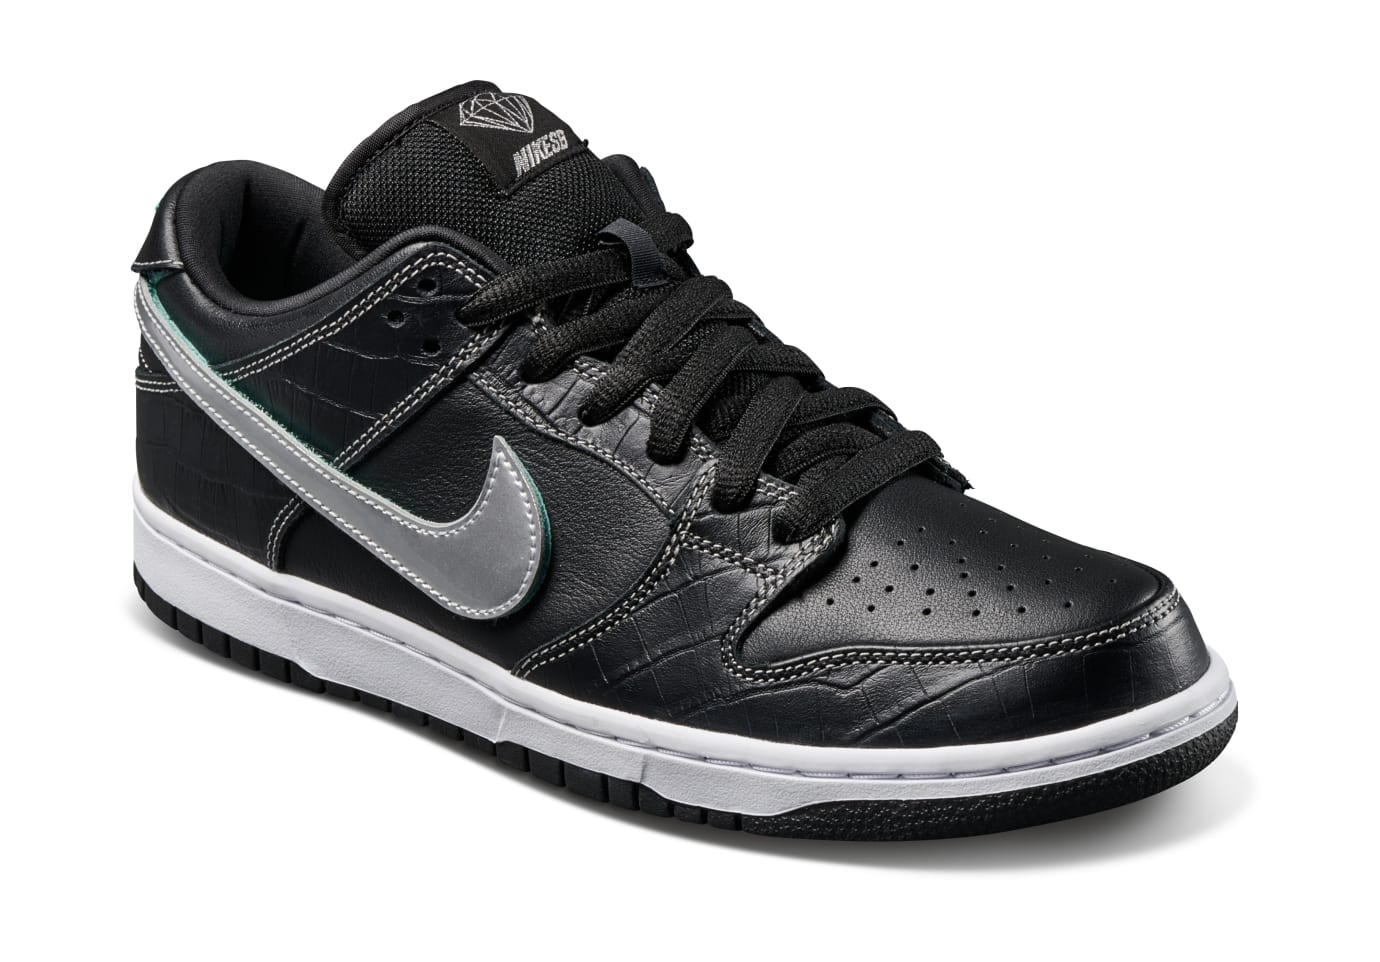 Diamond Supply Co. x Nike SB Dunk Low 'Black' (Front)